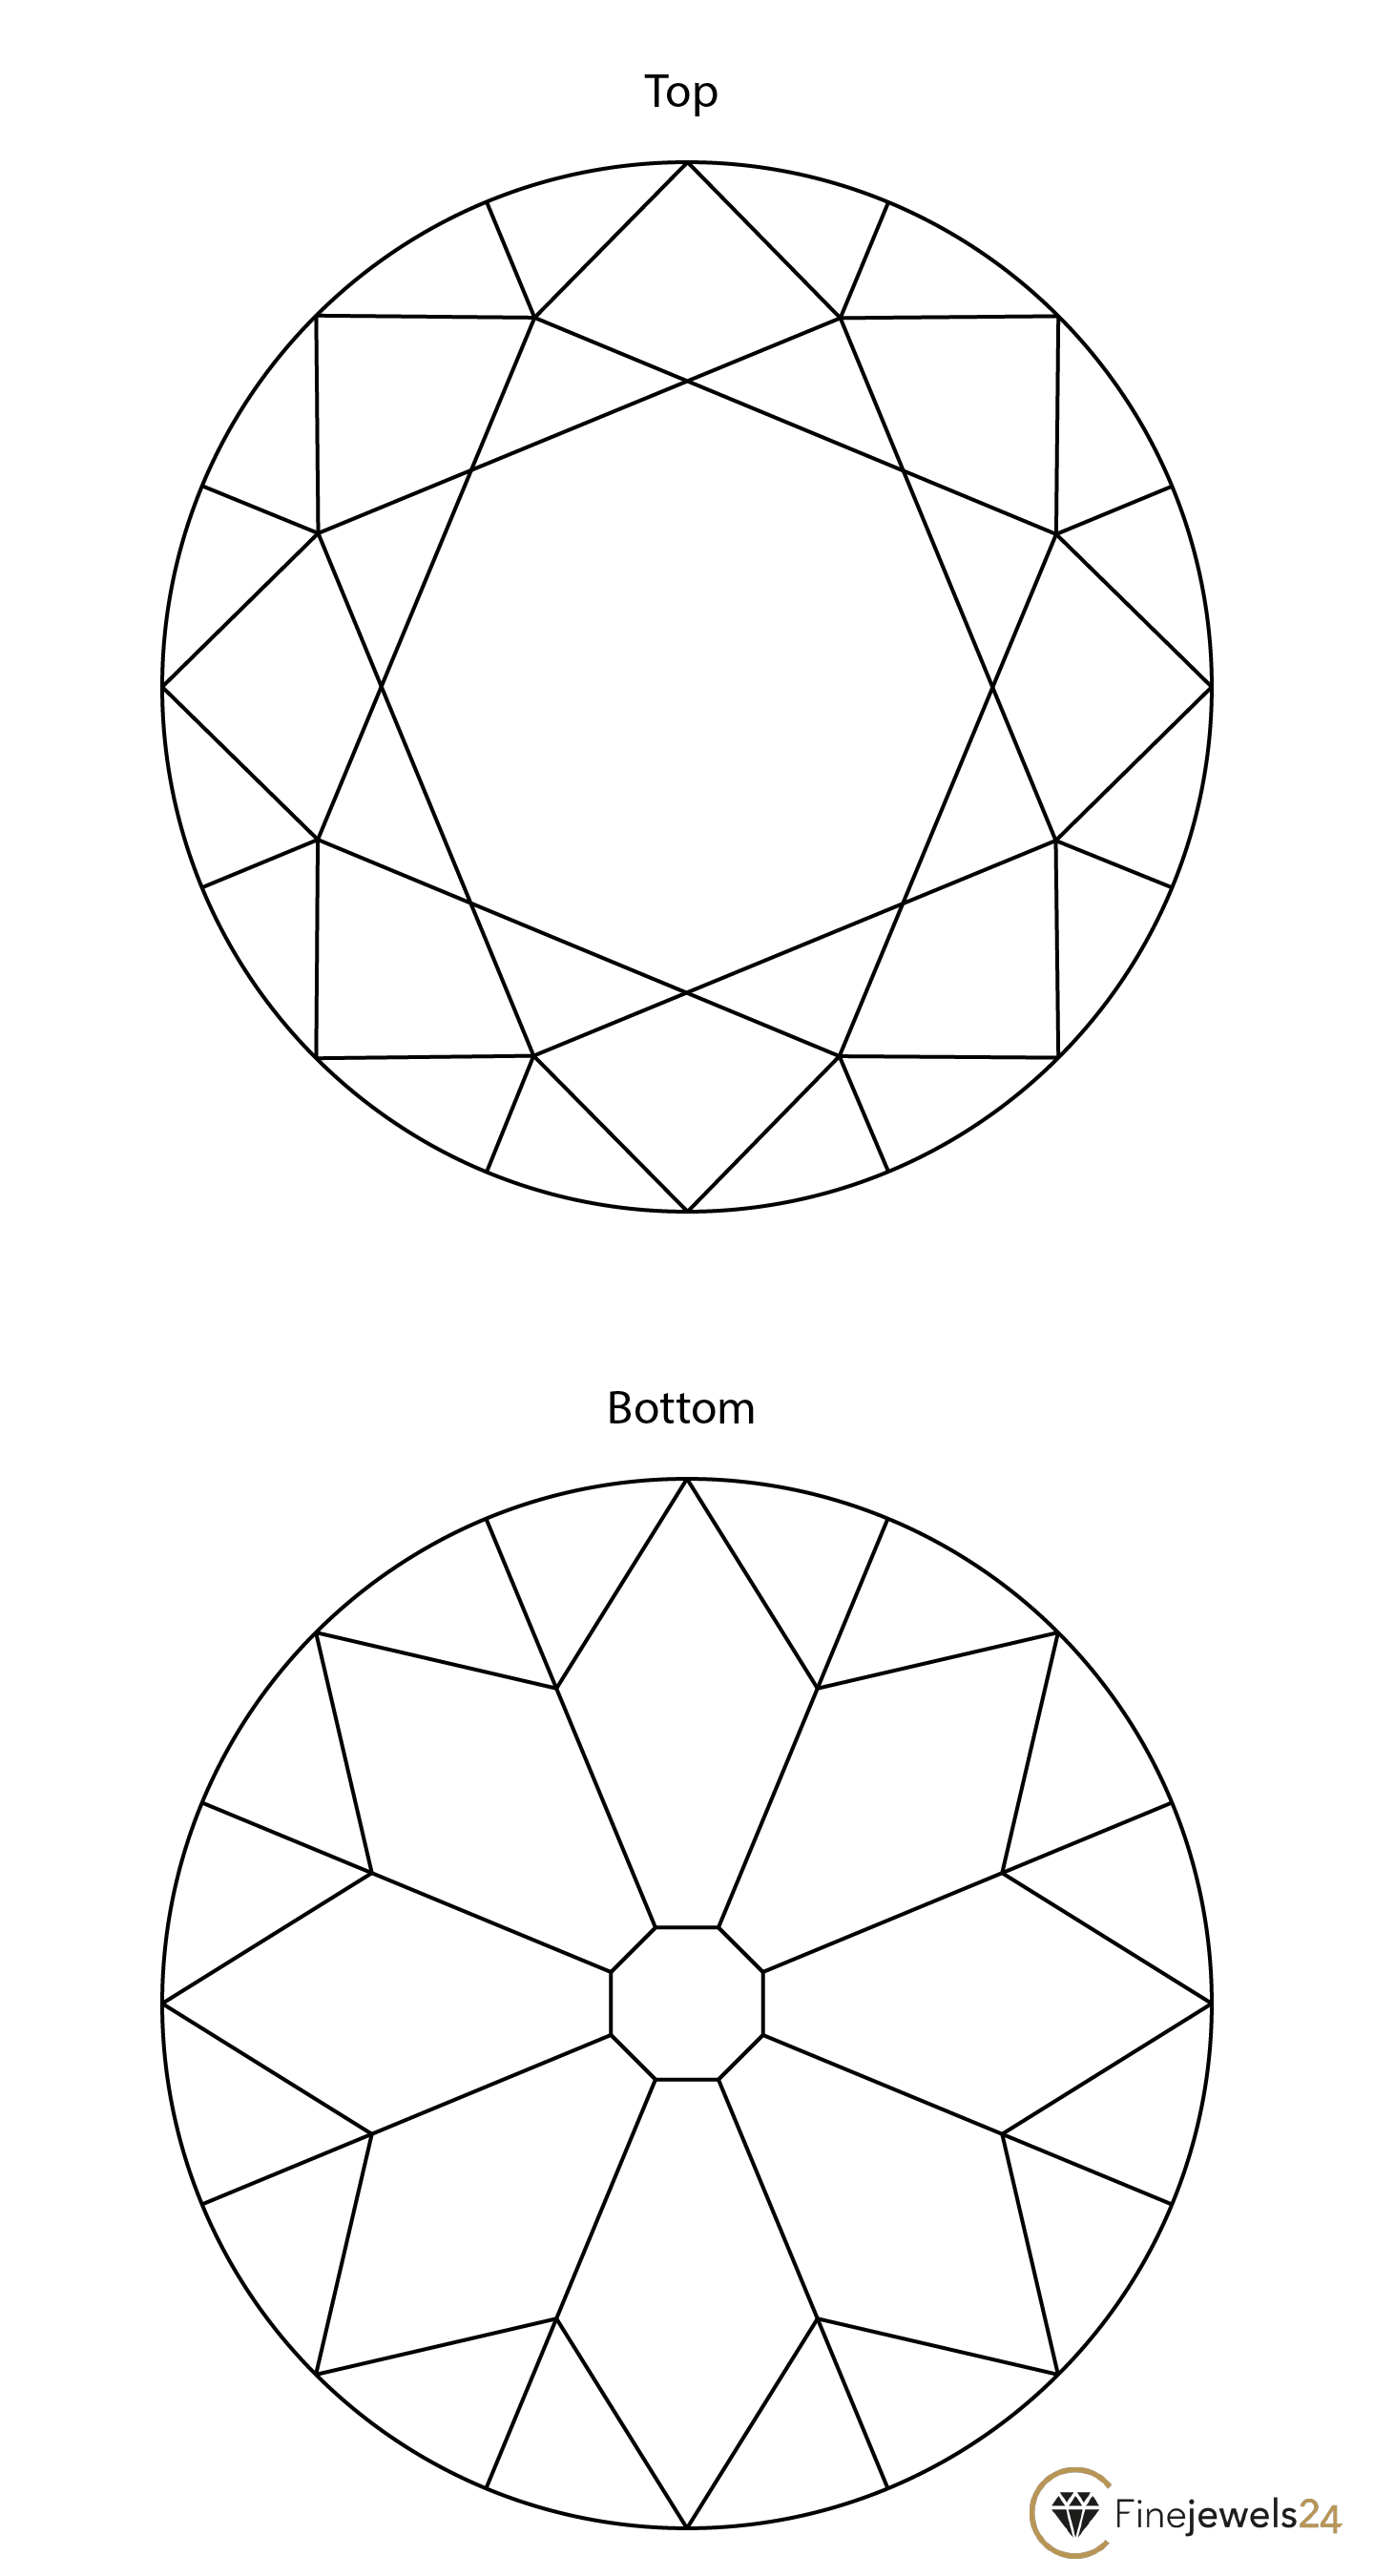 Point cut sketches of top and bottom side